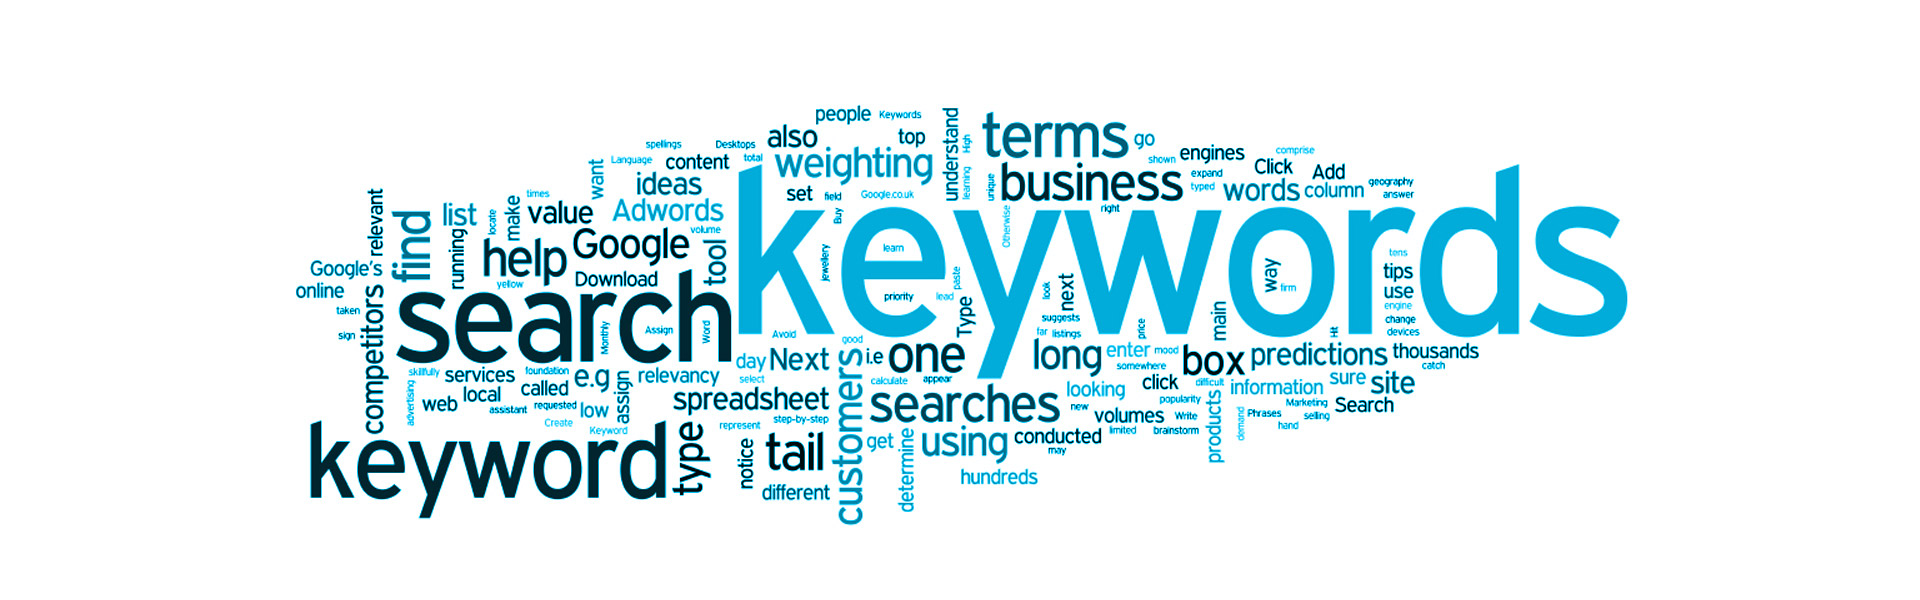 more-content-more-keywords